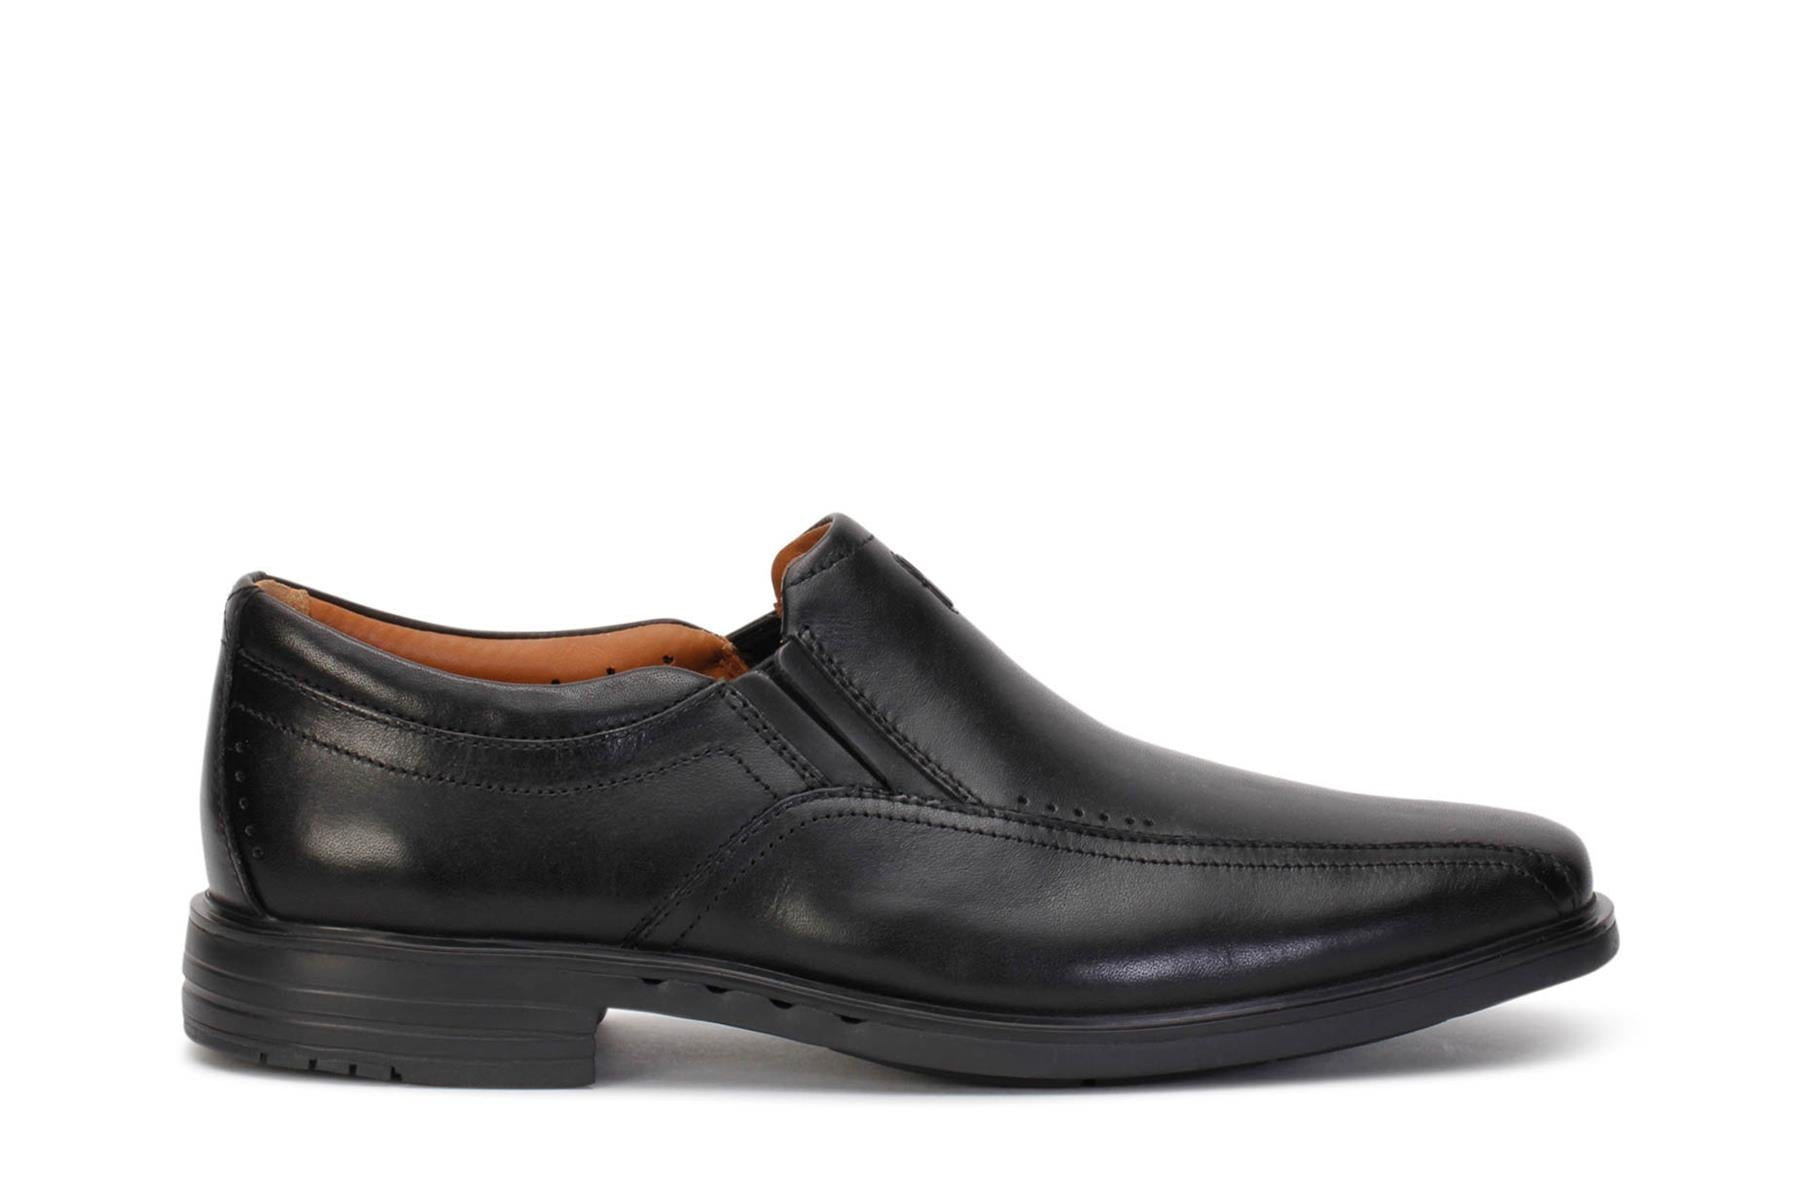 clarks-unstructured-mens-slip-on-shoes-unsheridan-go-black-leather-26128694-main